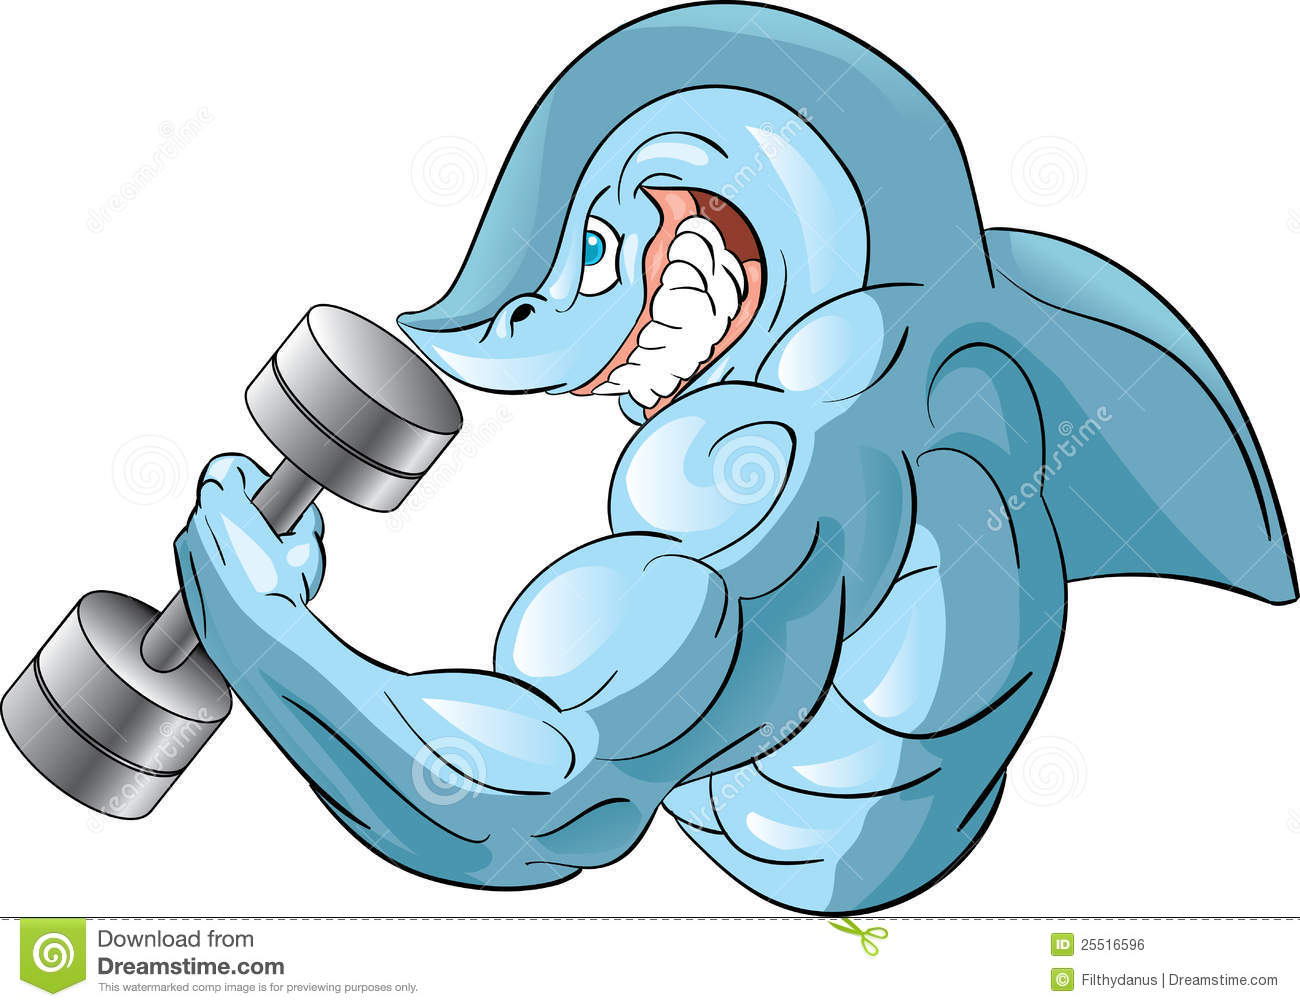 909 as well Strong Arm also Royalty Free Stock Photos Cartoon Scotsman Kilt Sporran Image19704478 likewise Corporate Culture  ics in addition Royalty Free Stock Image Gym Shark Image25516596. on strong cartoon people